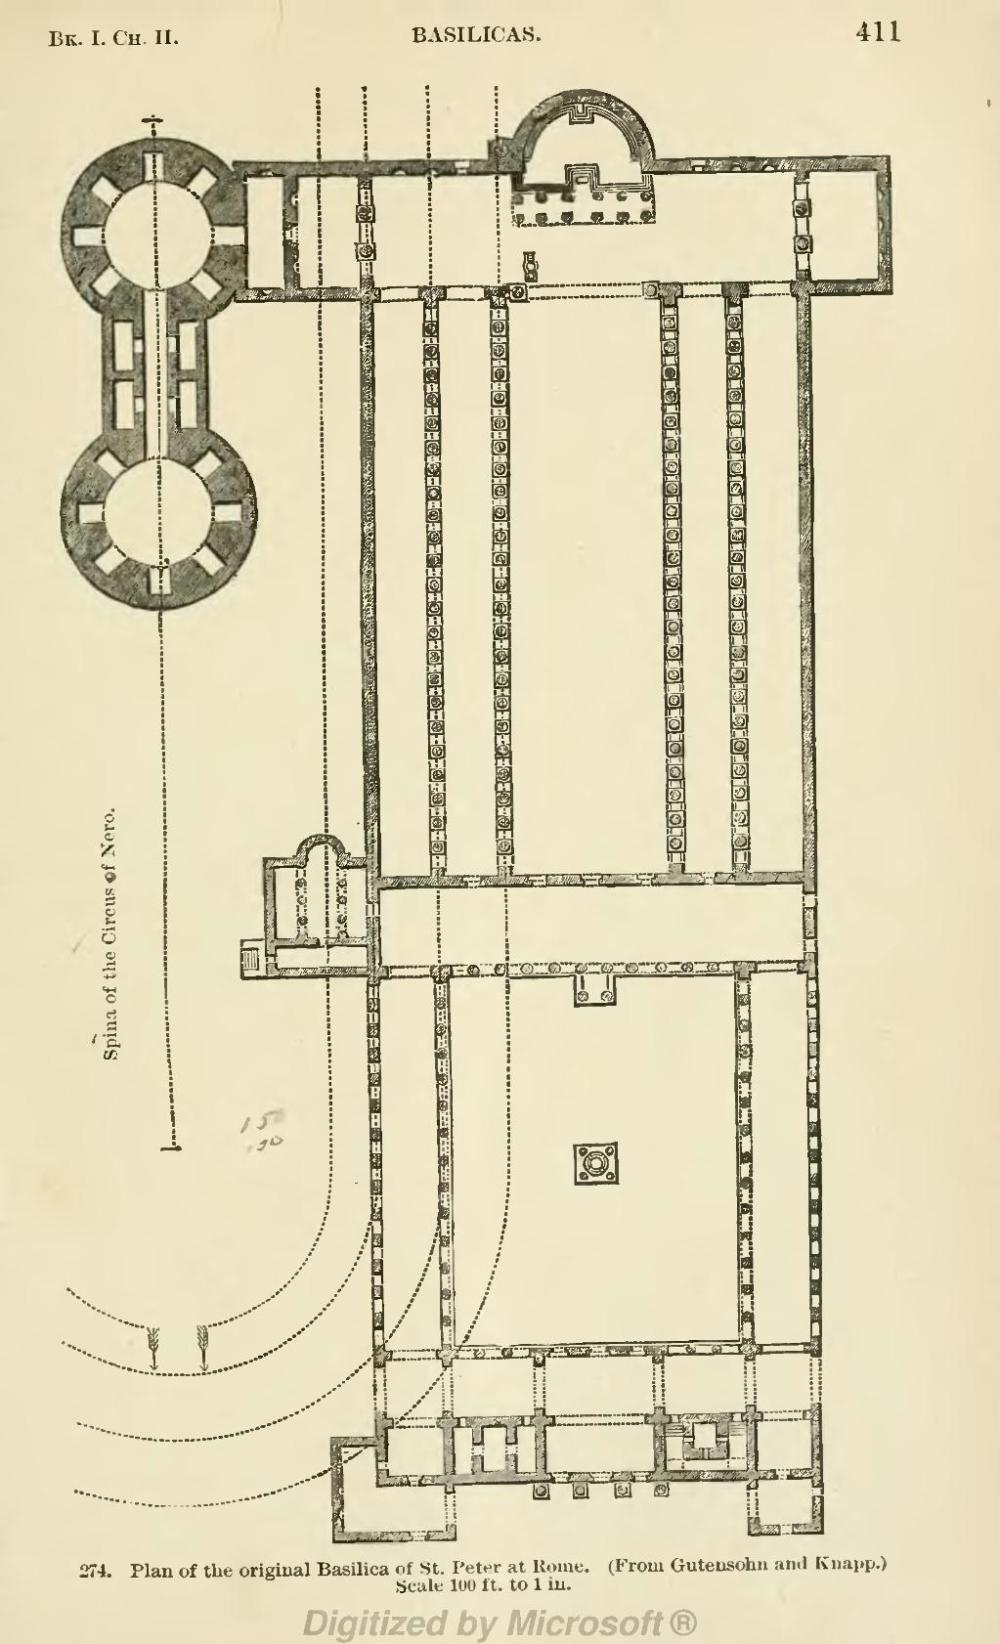 medium resolution of plan of the original basilica of st peter at rome from gutensohn and knapp scale l00 ft to 1 in